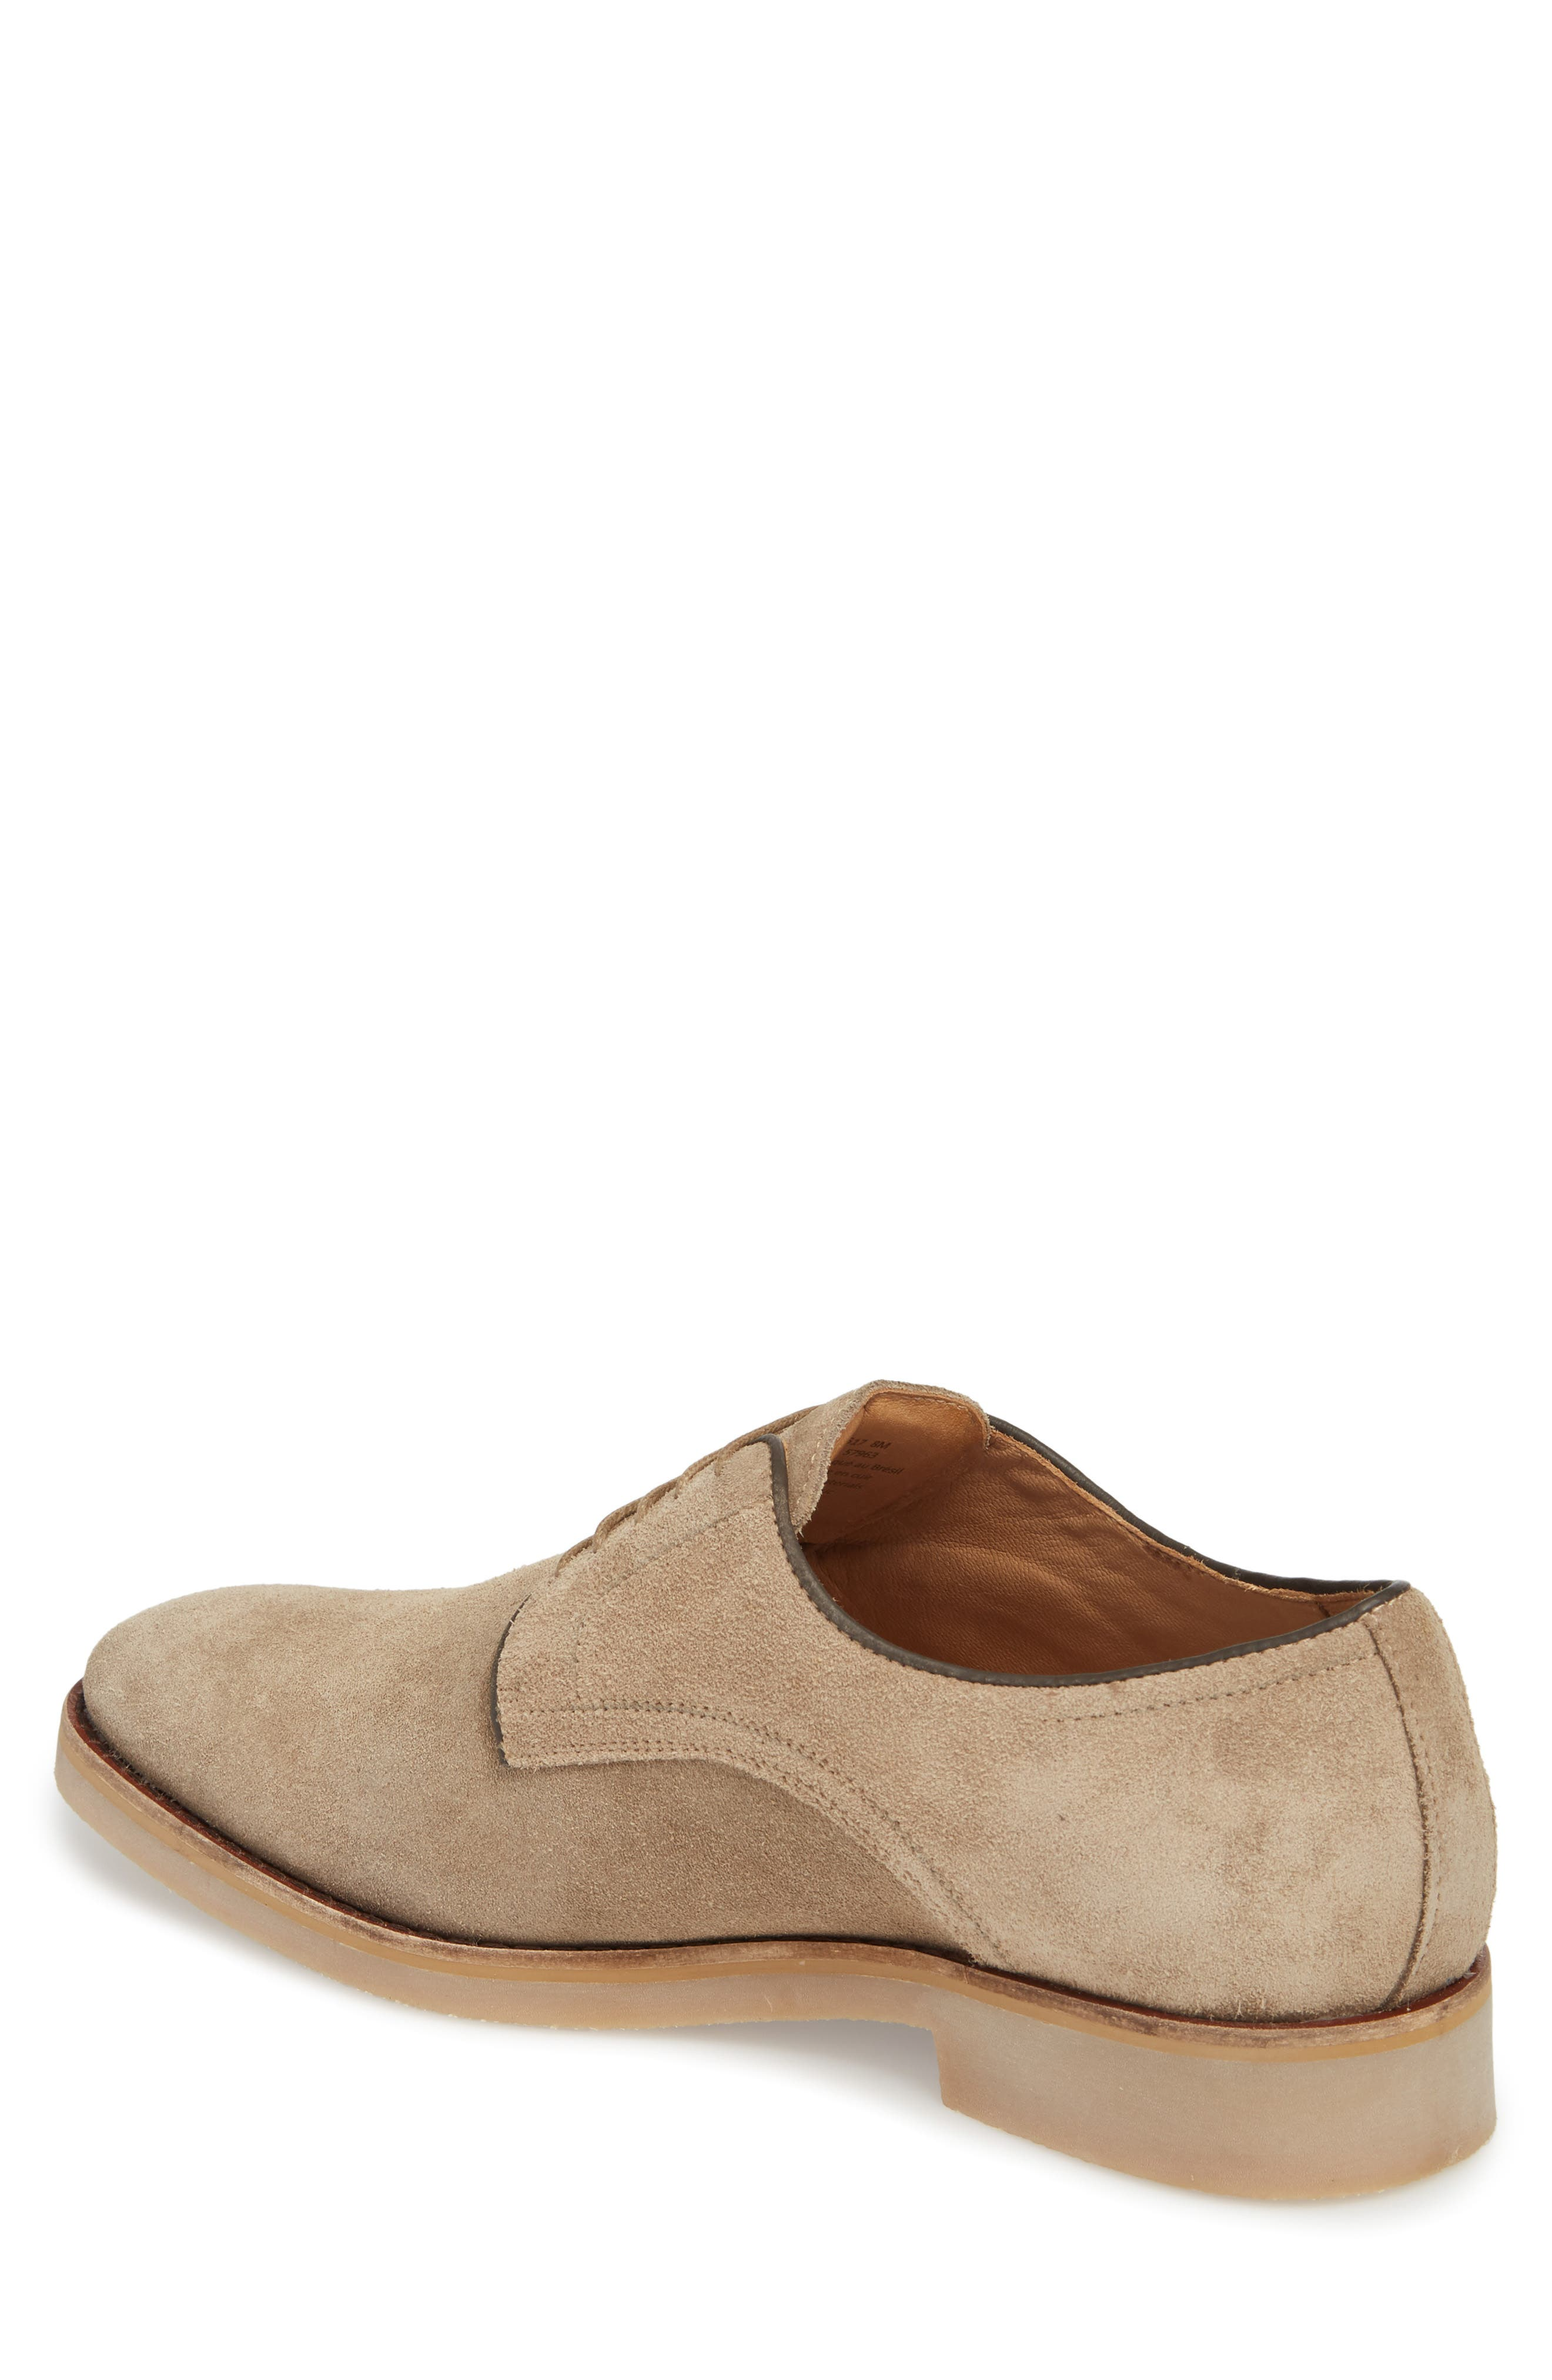 Santino Plain Toe Derby,                             Alternate thumbnail 2, color,                             Taupe Suede